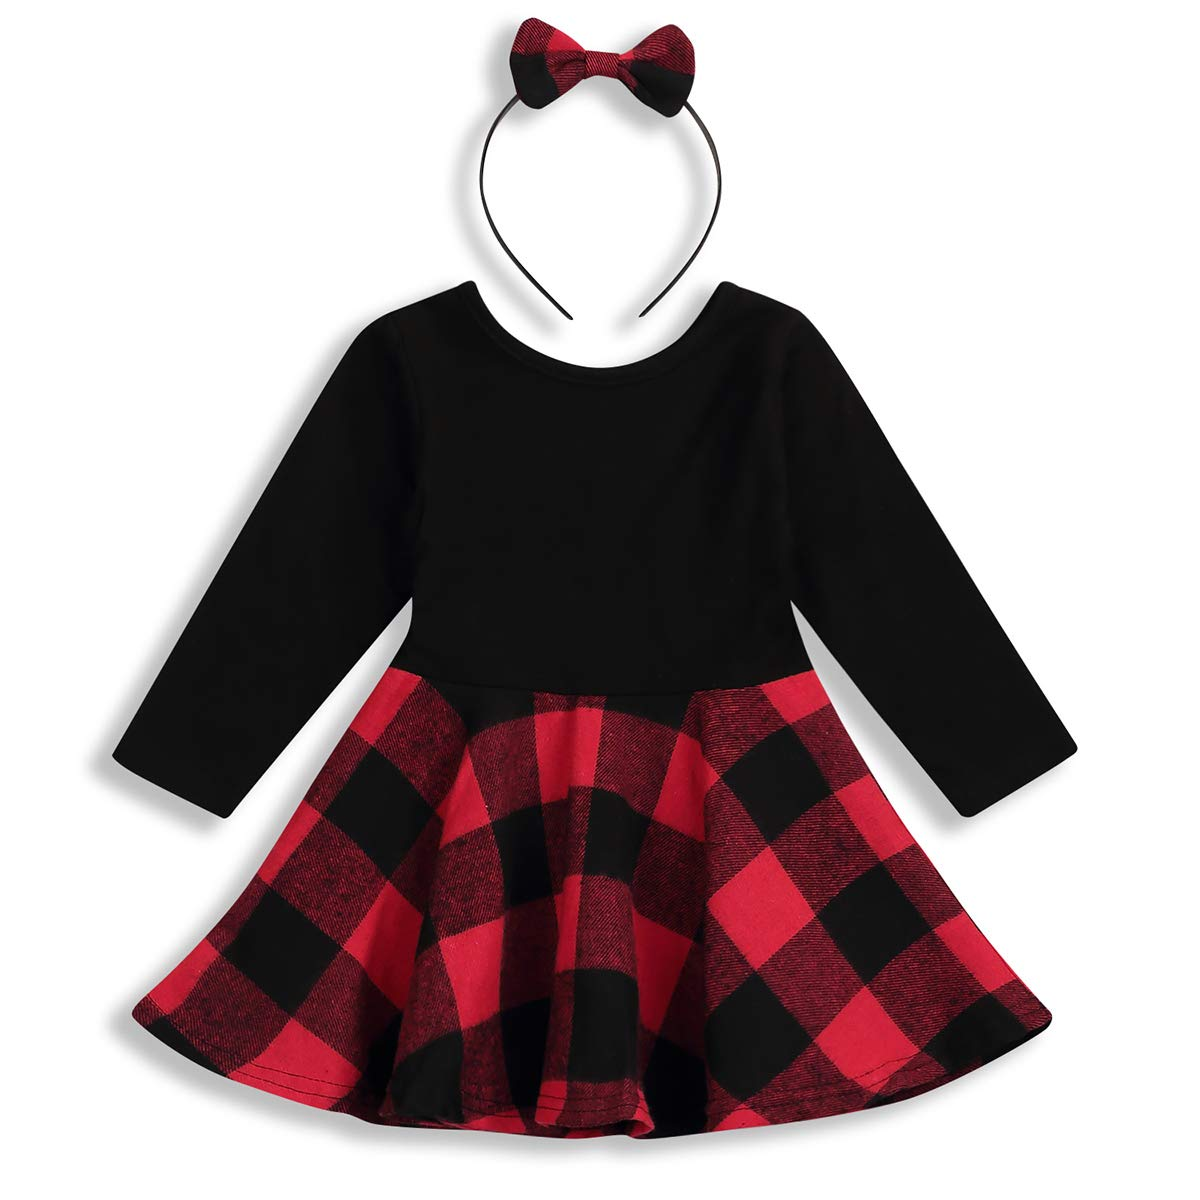 Infant Toddler Baby Girls Clothes Long Sleeve Plaid Dress with Bowknot Headband Princess Skirt Outfit Set